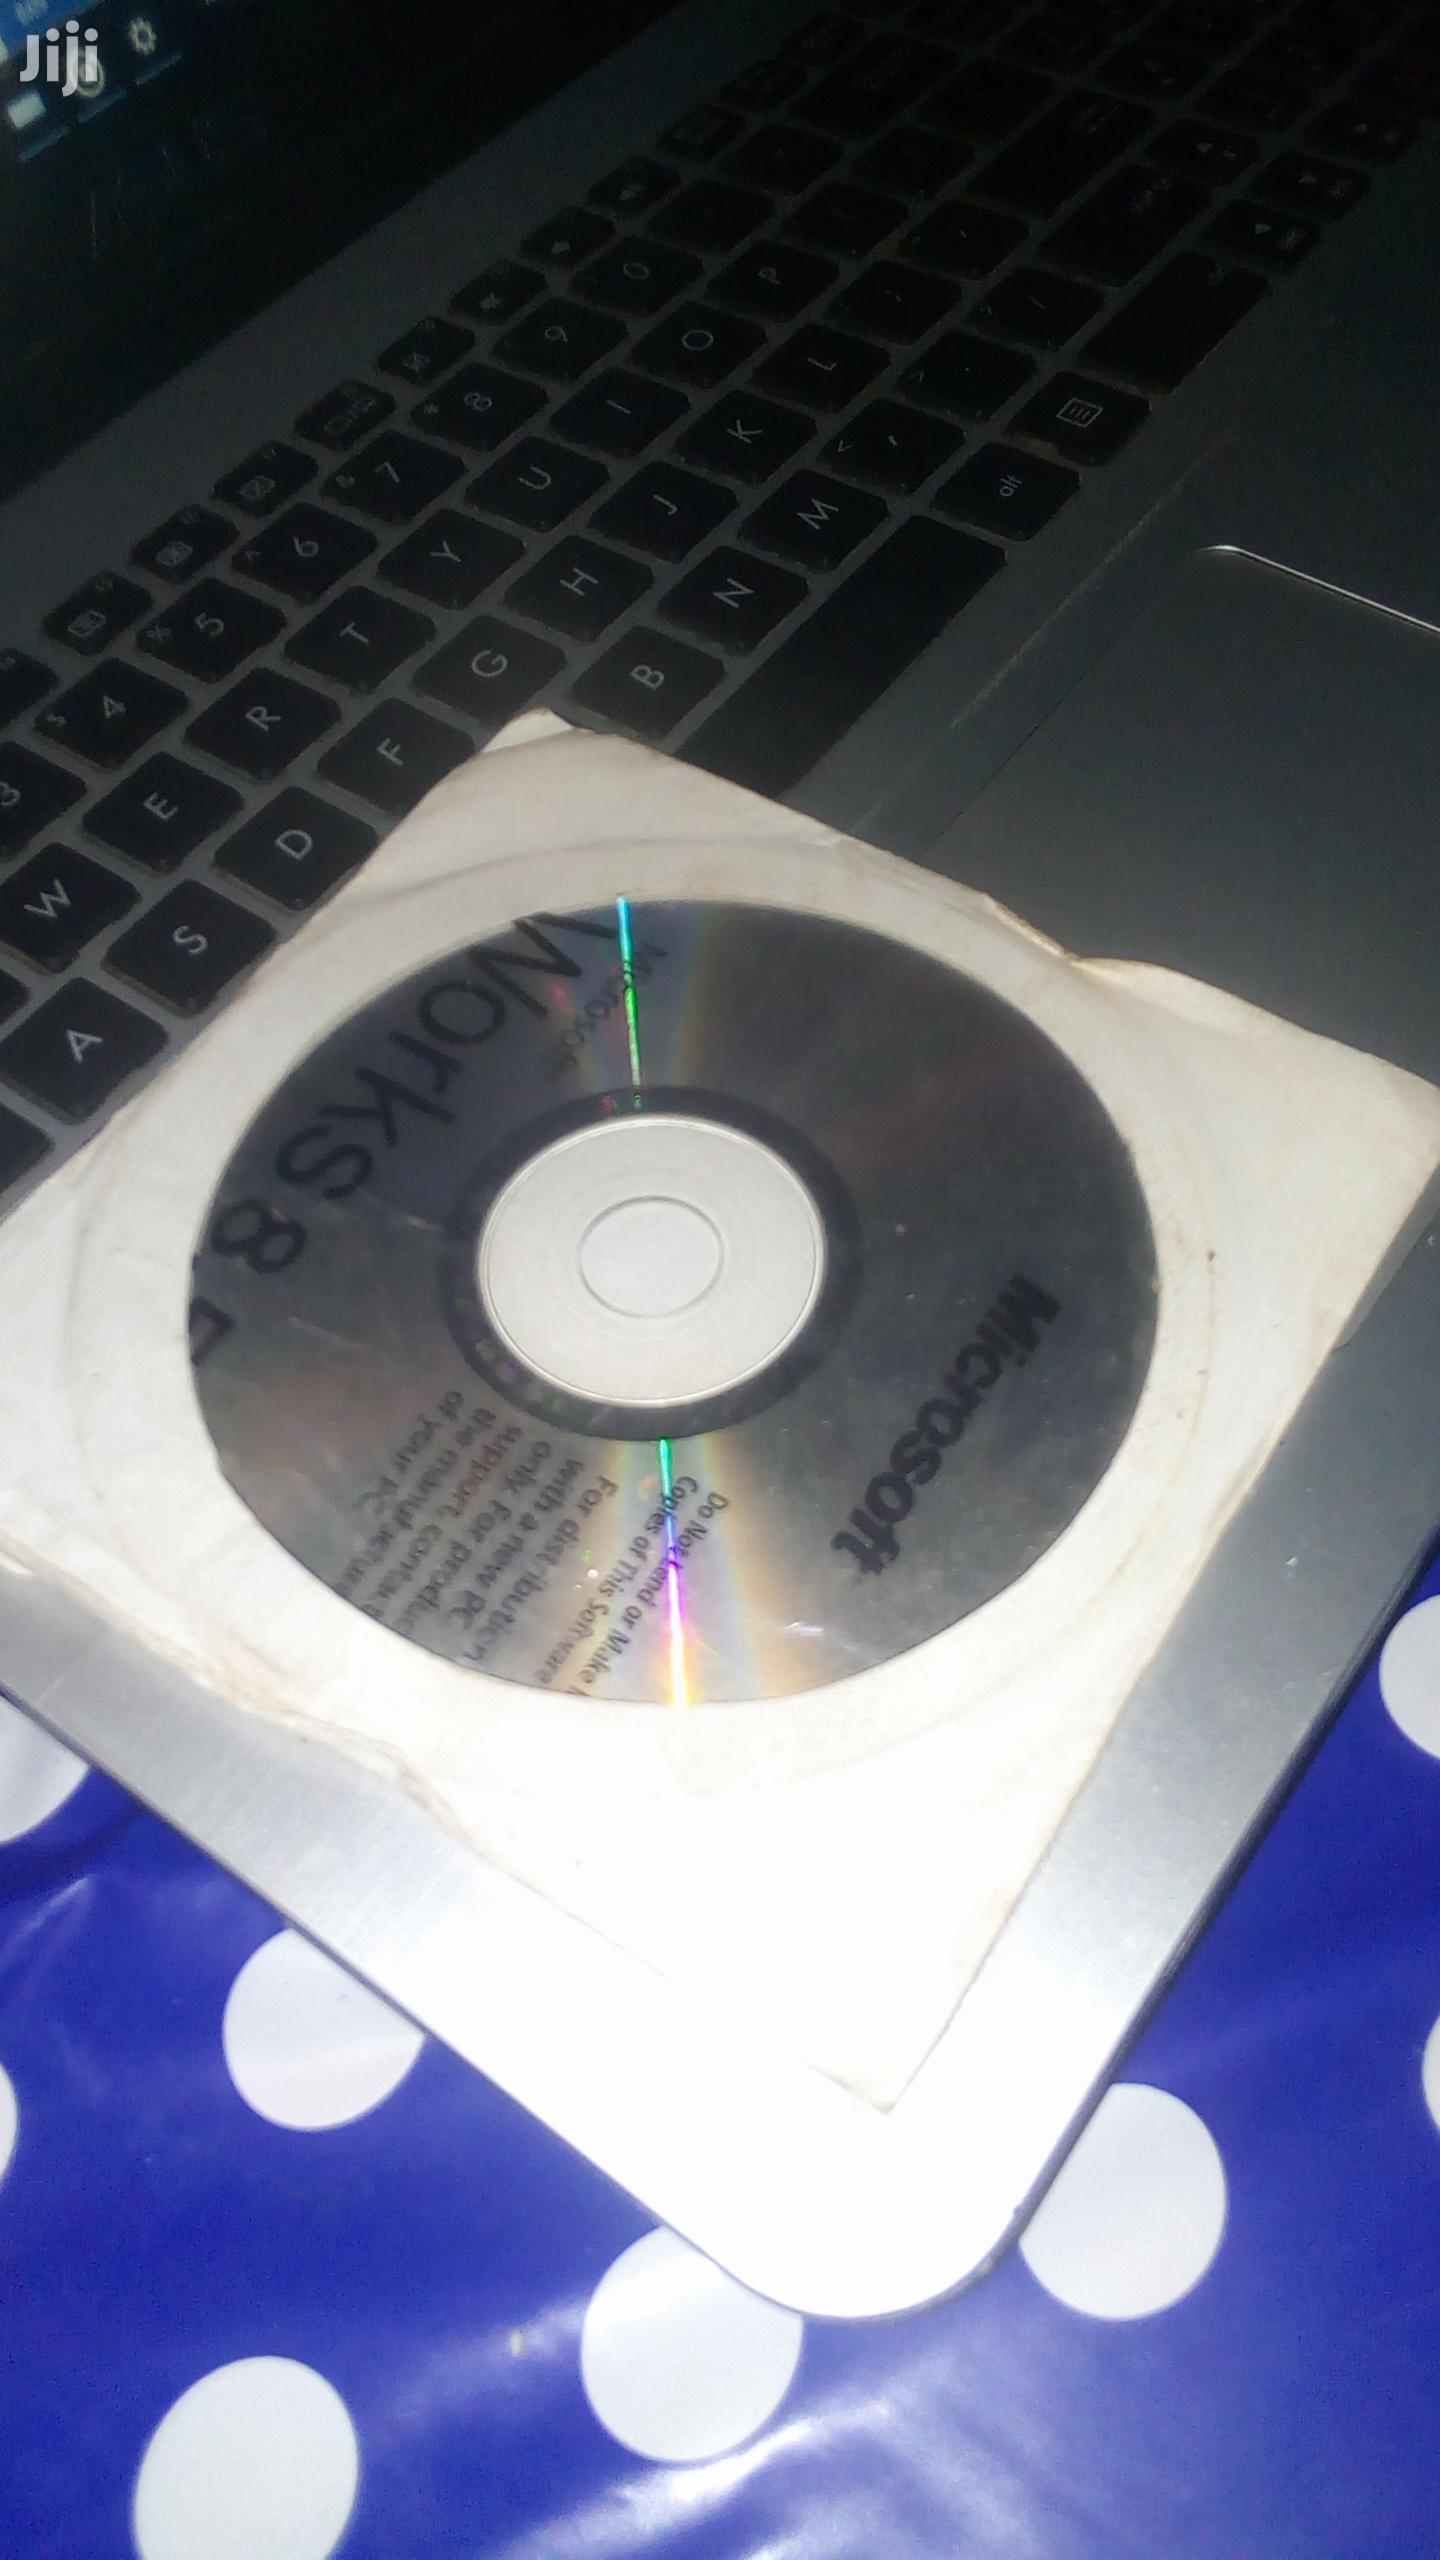 Windows 7,8,10 Burn Disk